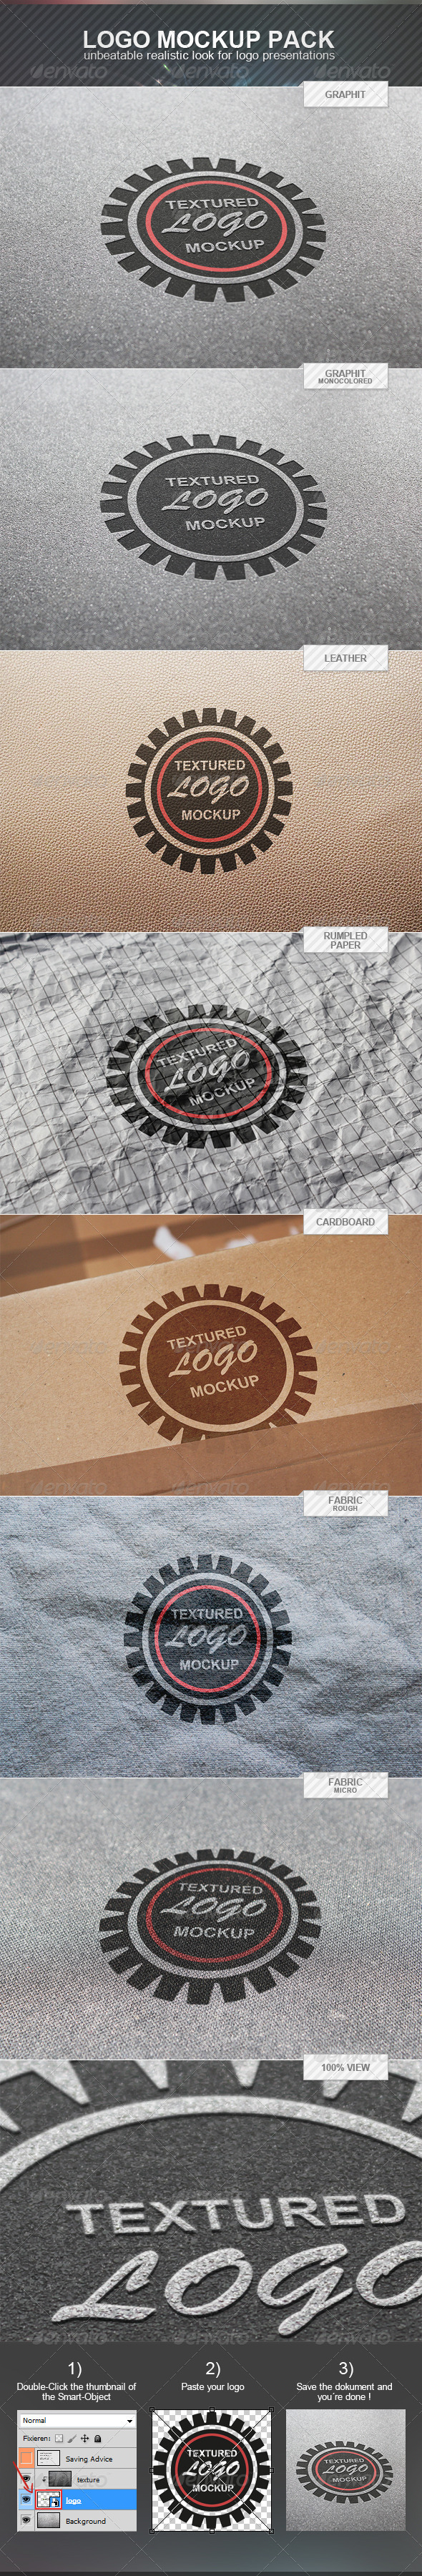 Textured Logo Mockup Pack - Logo Product Mock-Ups